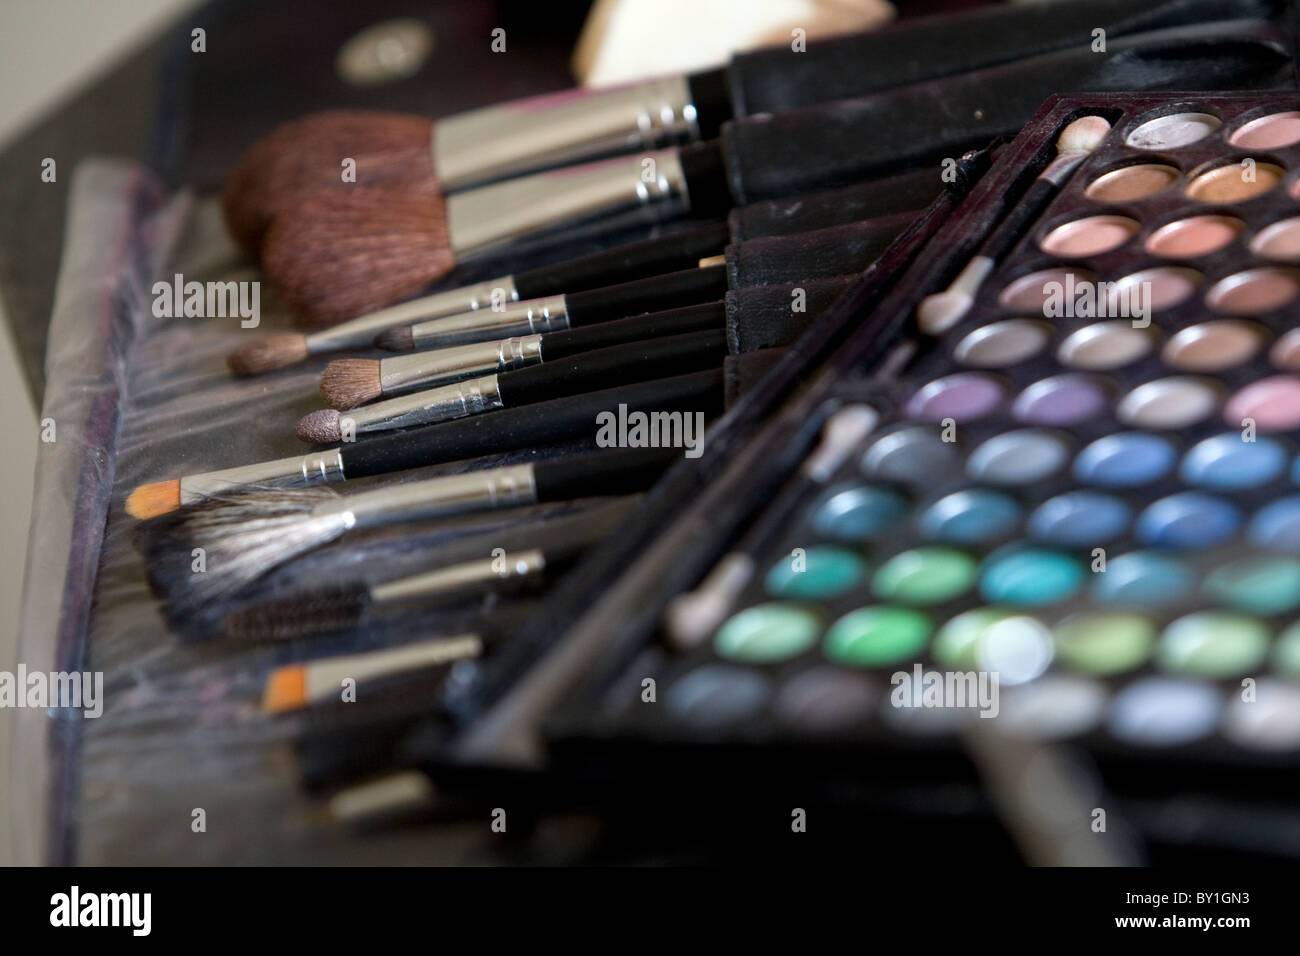 Color eye make up box swatch and brushes - Stock Image